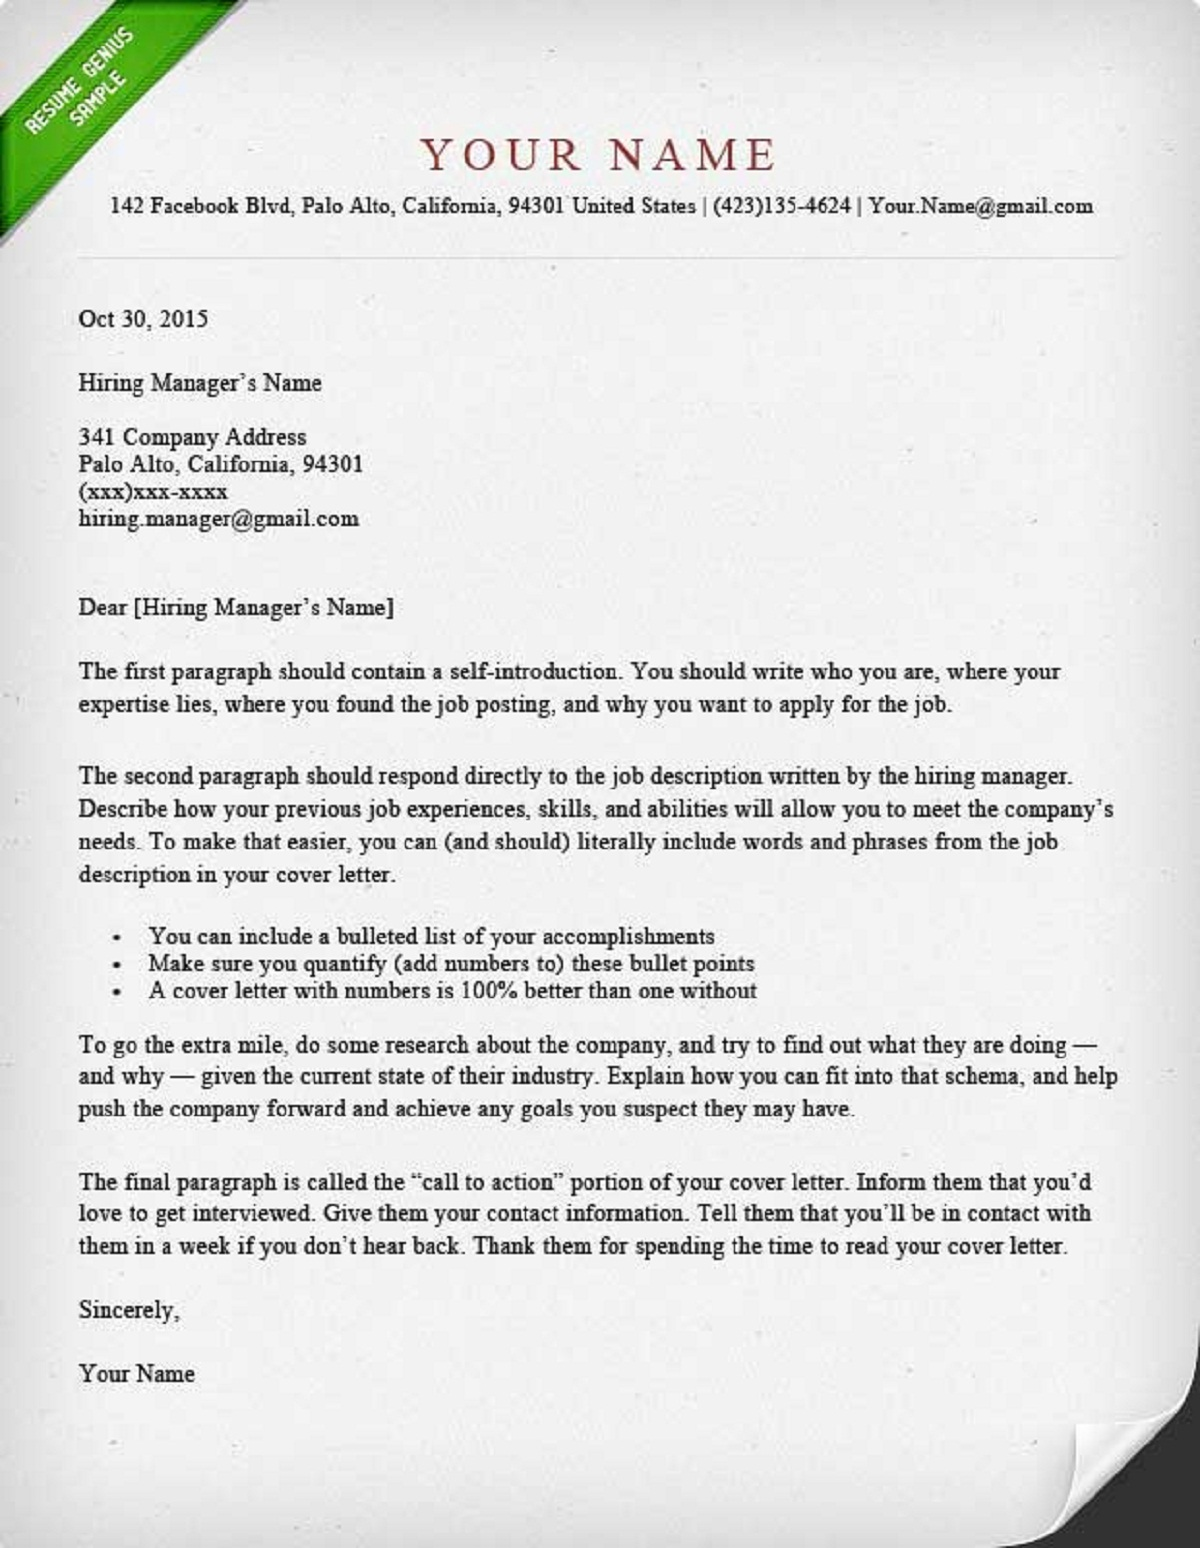 how to wirte a cover letter - how to write a cover letter guide with sample how can done